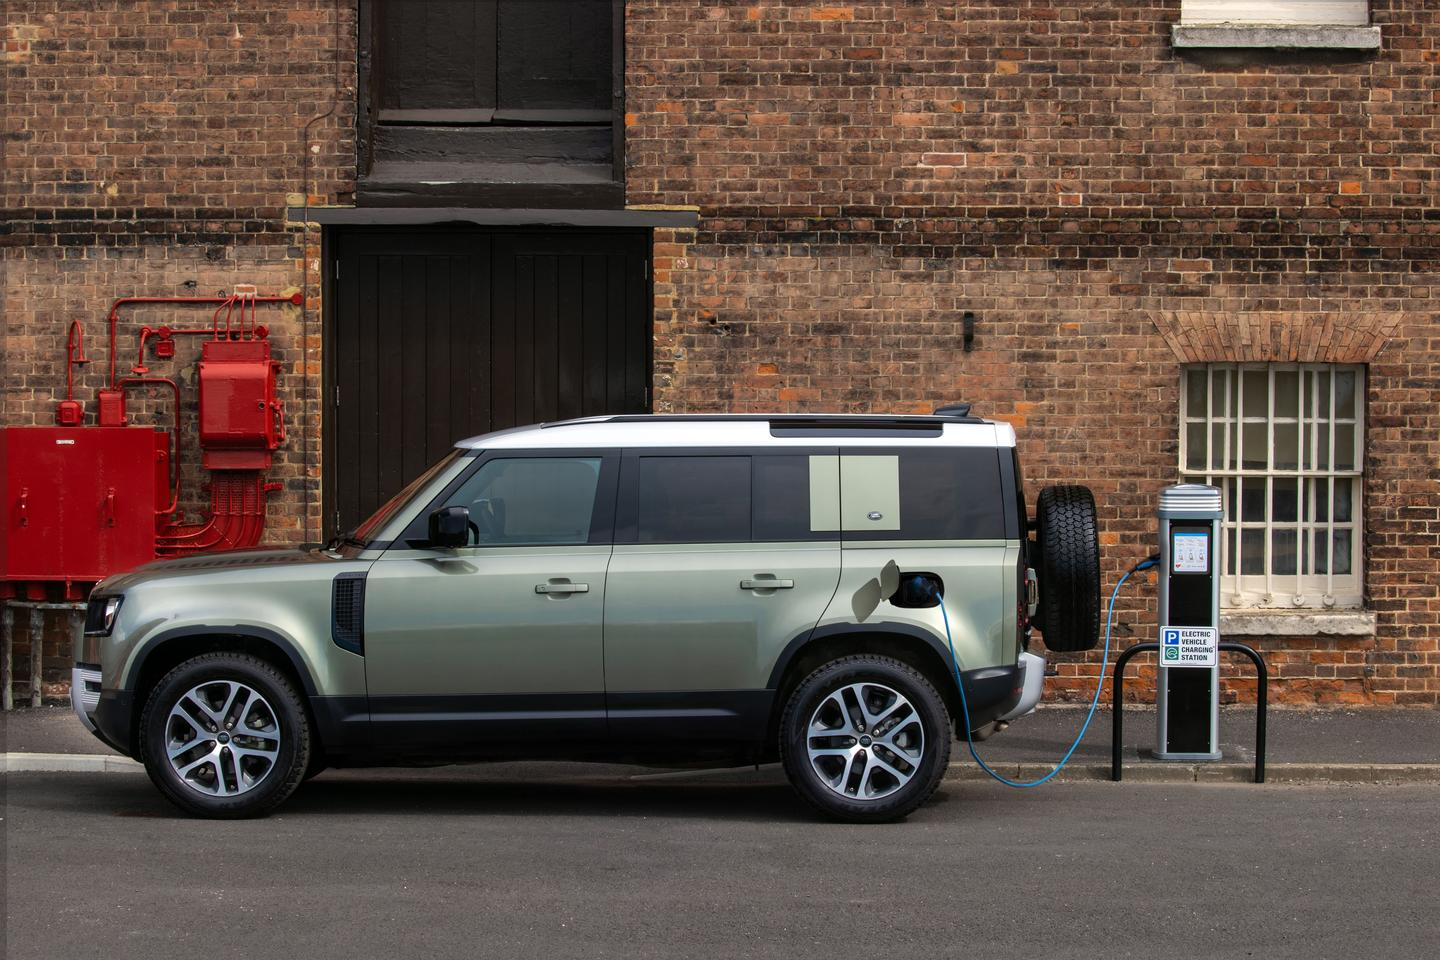 The new Land Rover Defender 400e takes just 30 minutes to charge to 80 percent when hooked up to a 50-kW fast charger